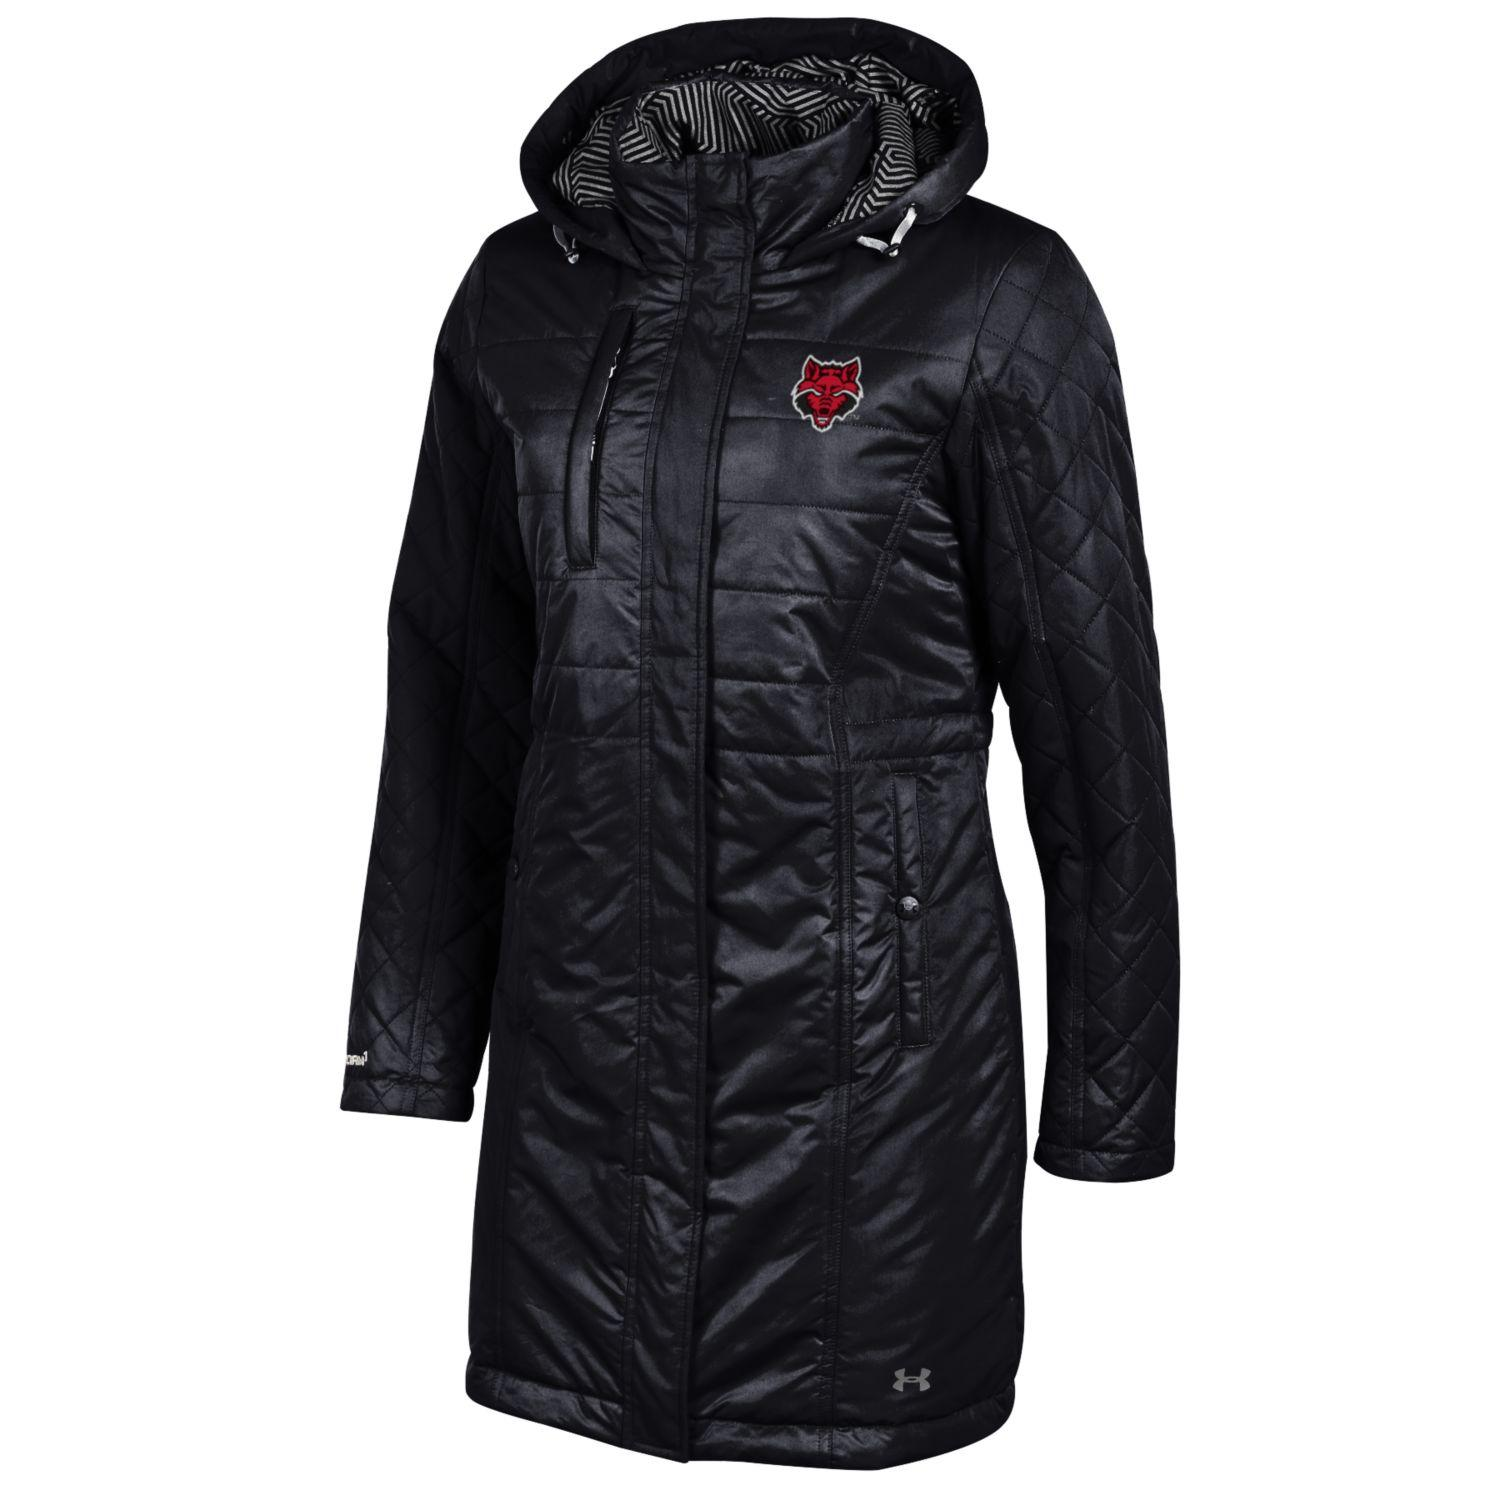 Red Wolves Puffer Parka Jacket